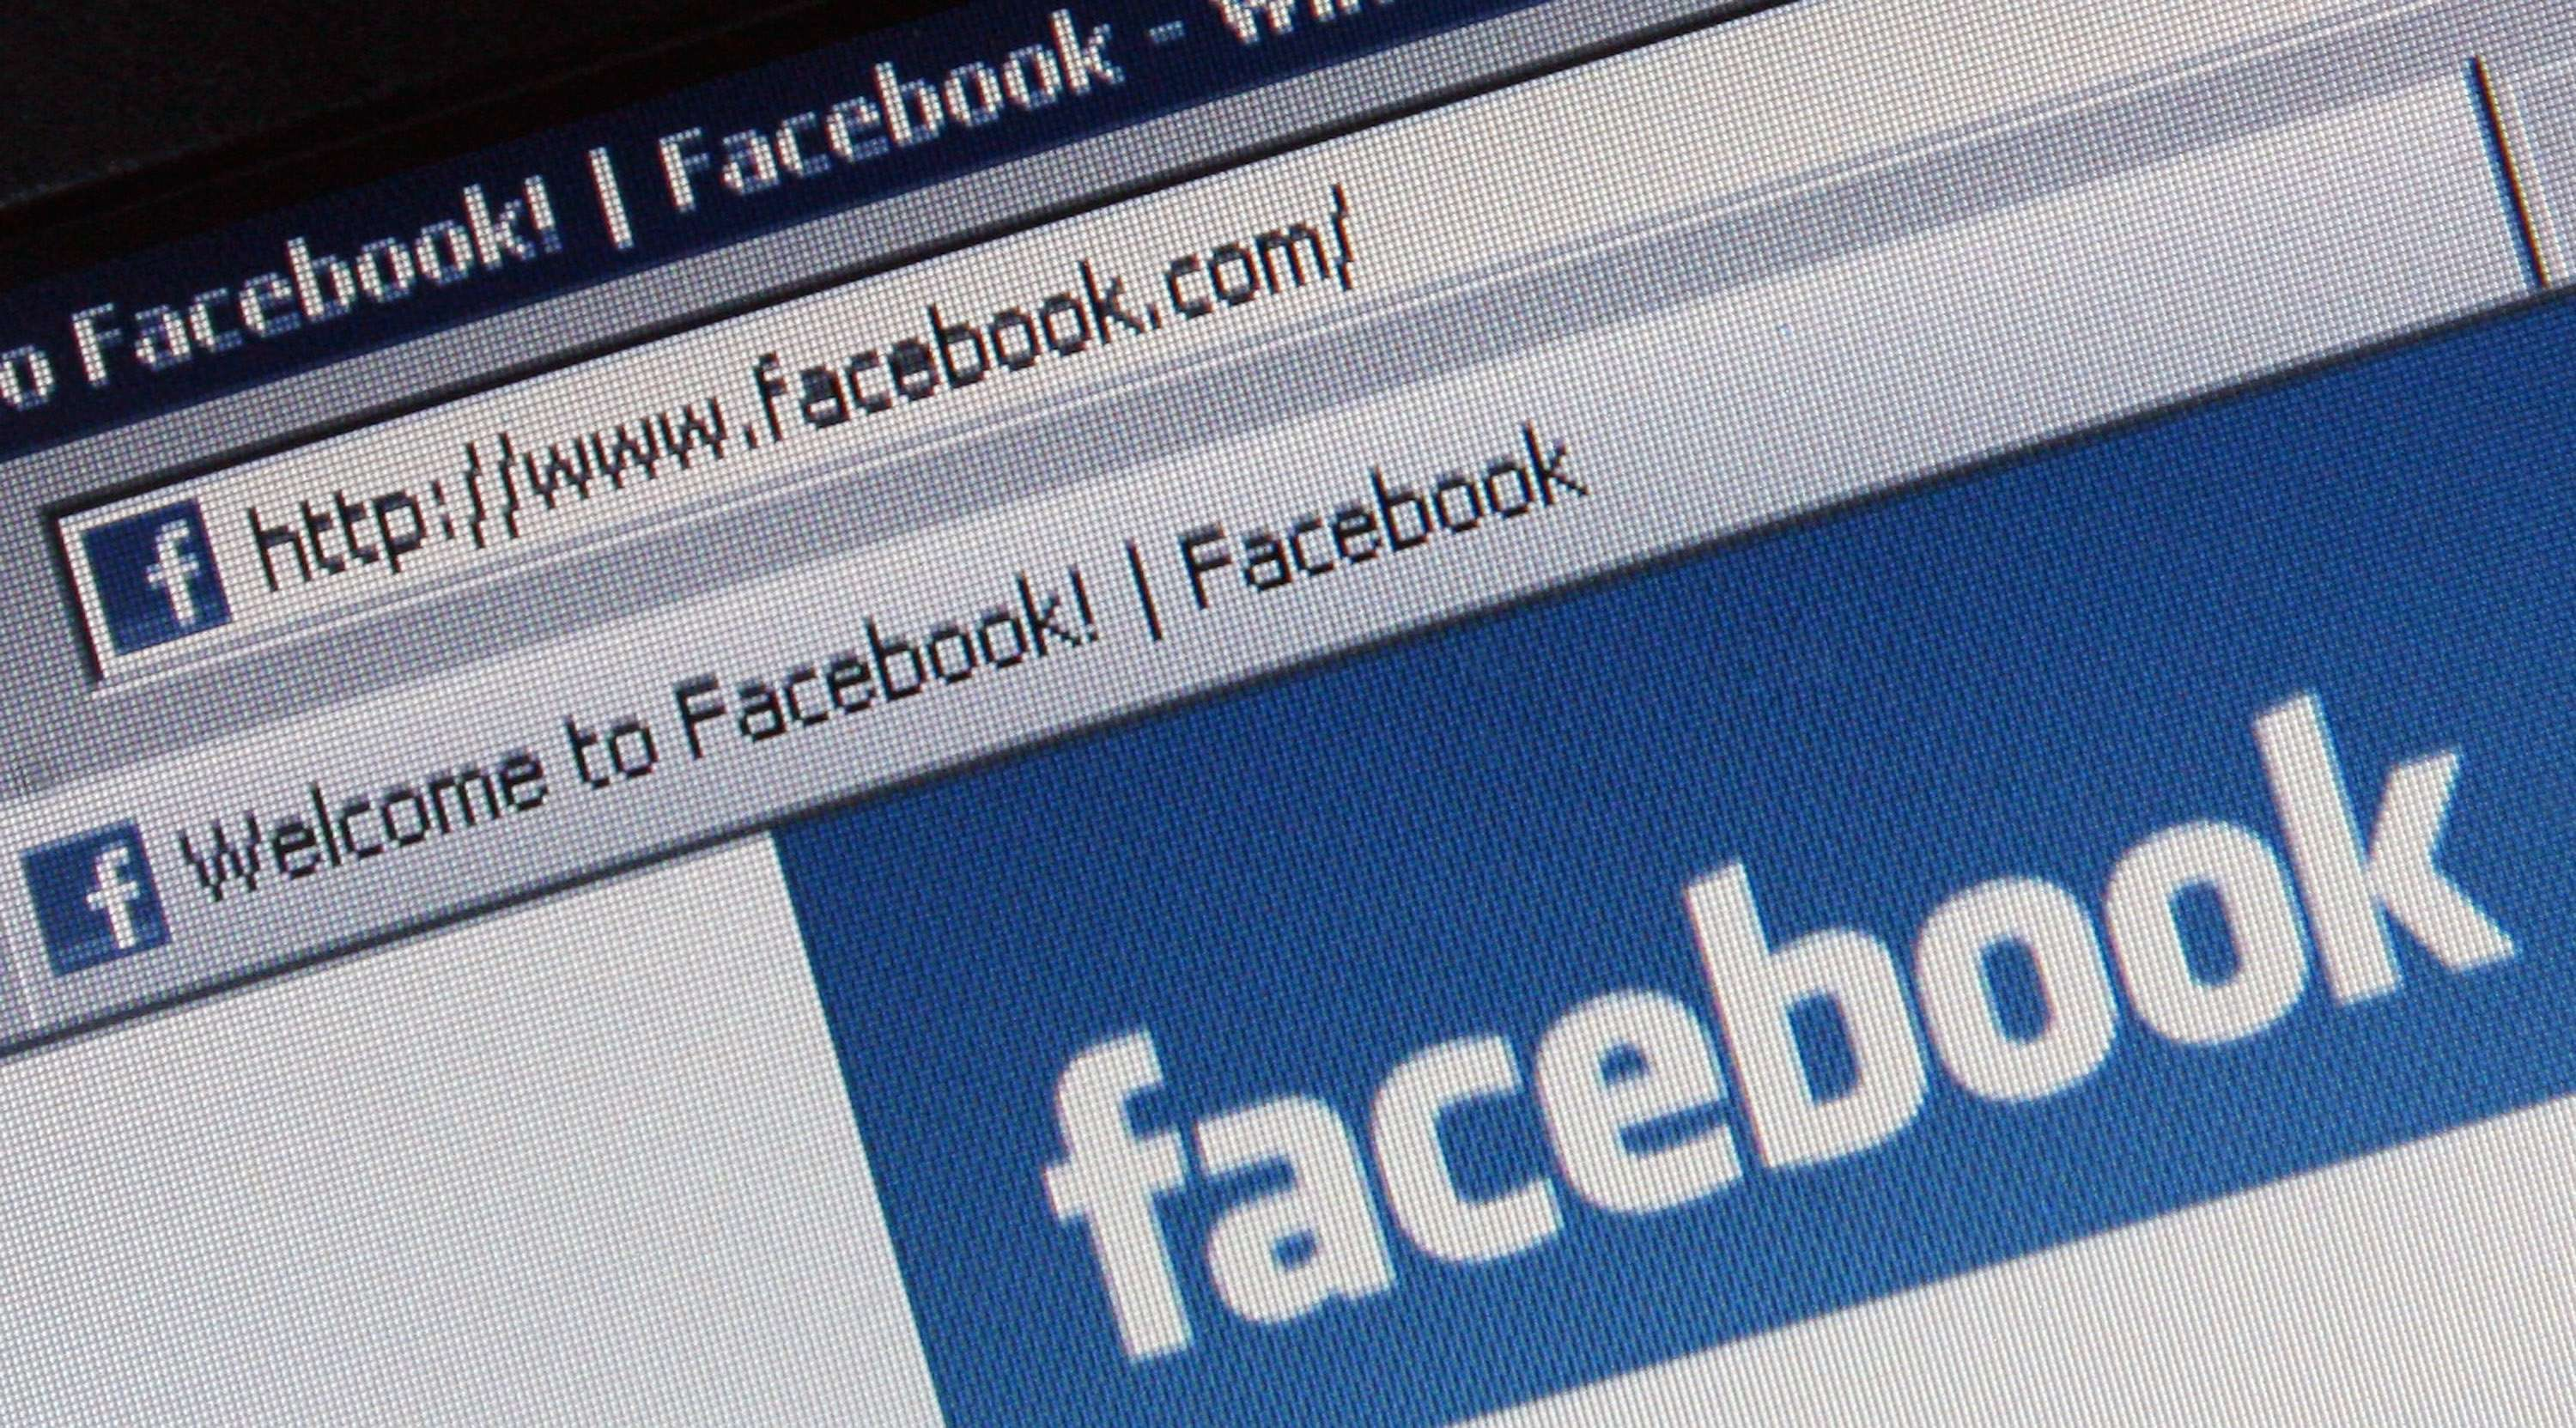 La red social Facebook ha dejado de funcionar durante hora y media Foto: Getty